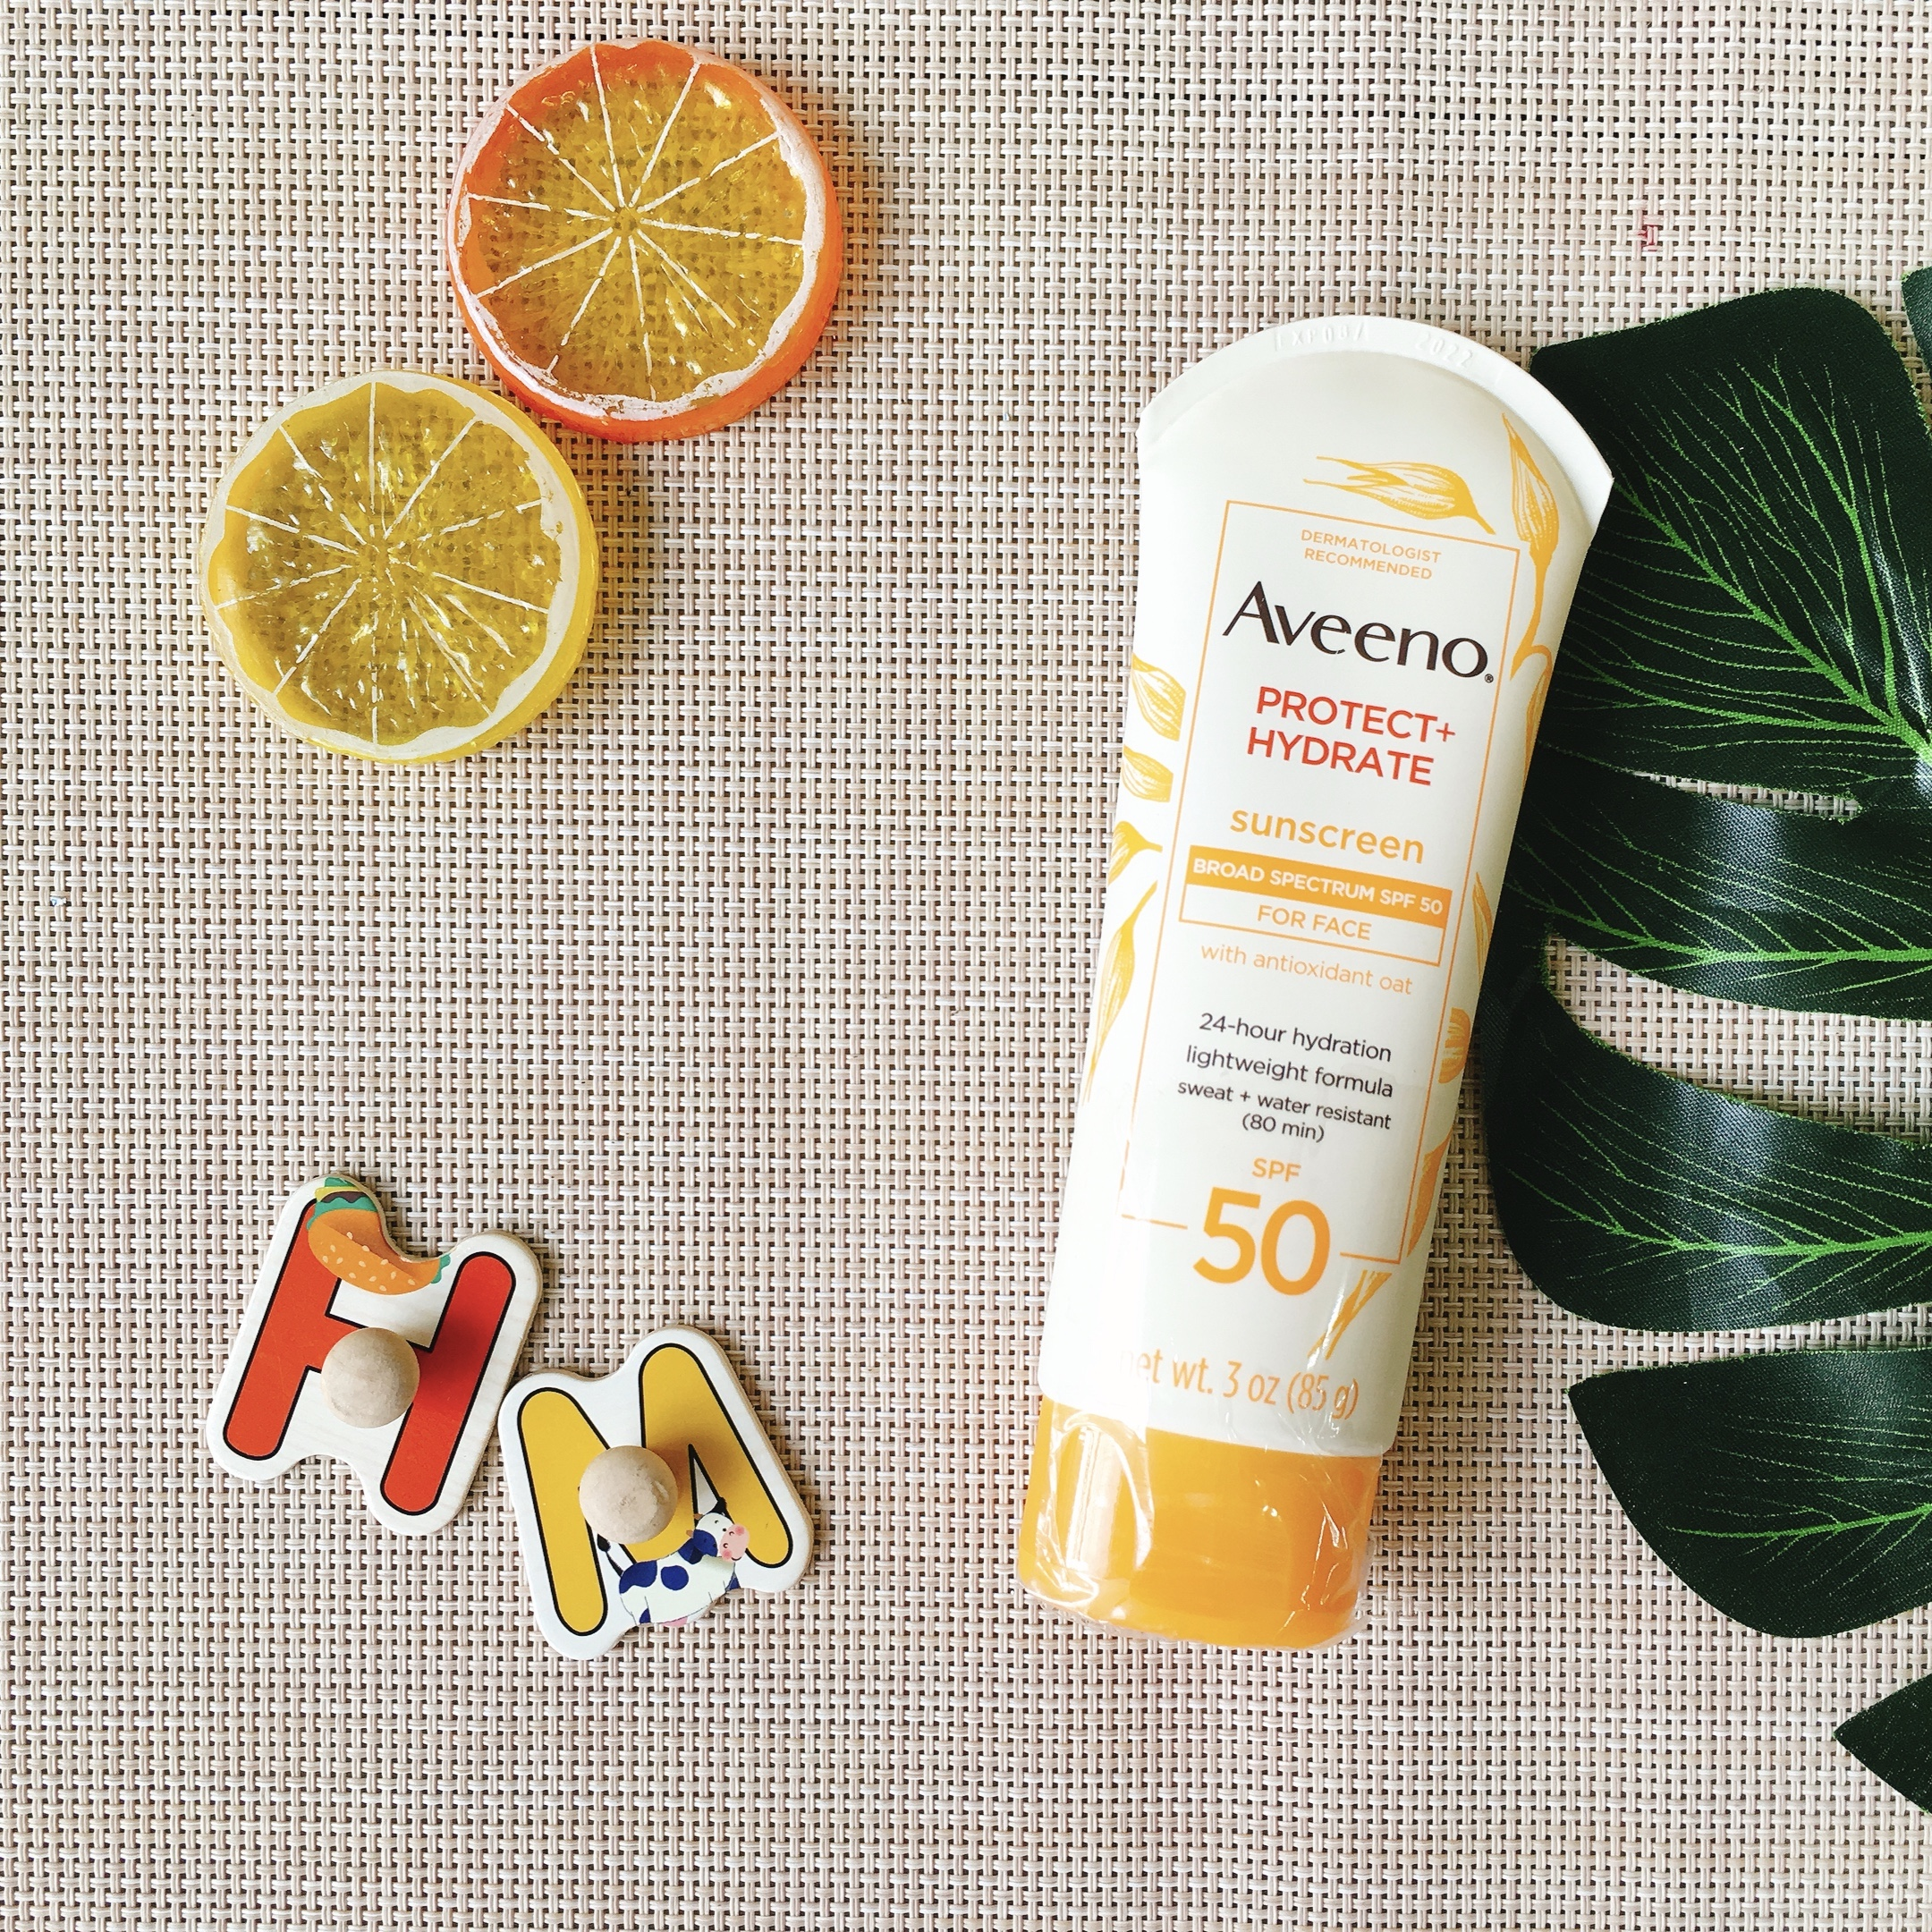 Kem chống nắng Aveeno Protect Hydrate SPF50